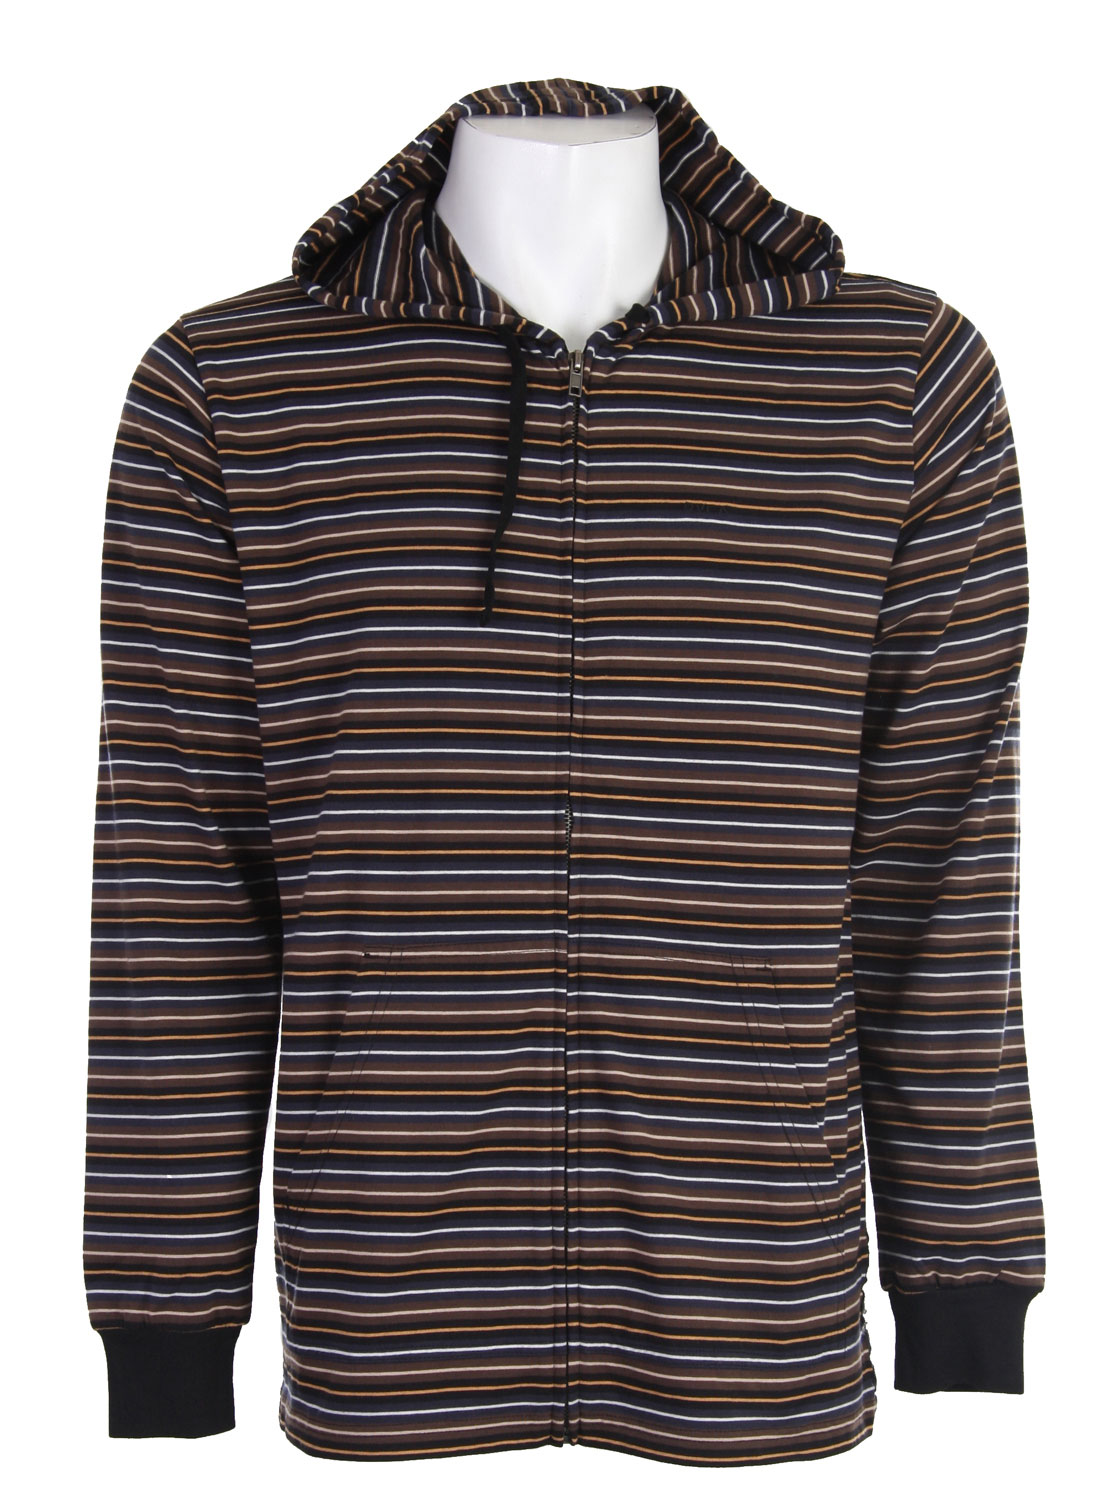 This striped zip up hoodie from RVCA is an instant classic. It features an embroidered RVCA logo on the left side as well as a woven label at the bottom left side seam. The cotton/polyester mix makes for a comfortable and durable material that will last a long time while still feeling great. The RVCA Rally Stripe Hoodie matches just about anything and looks great no matter what. You're going to want to wear it all the time. Just remember to wash it, please.Key Features of the RVCA Rally Stripe Hoodie: Cotton/Polyester jersey yarn-dyed stripe zip front hooded long sleeve shirt Drawcord at hood opening RVCA embroidery at left chest Woven label at bottom left side seam - $32.95